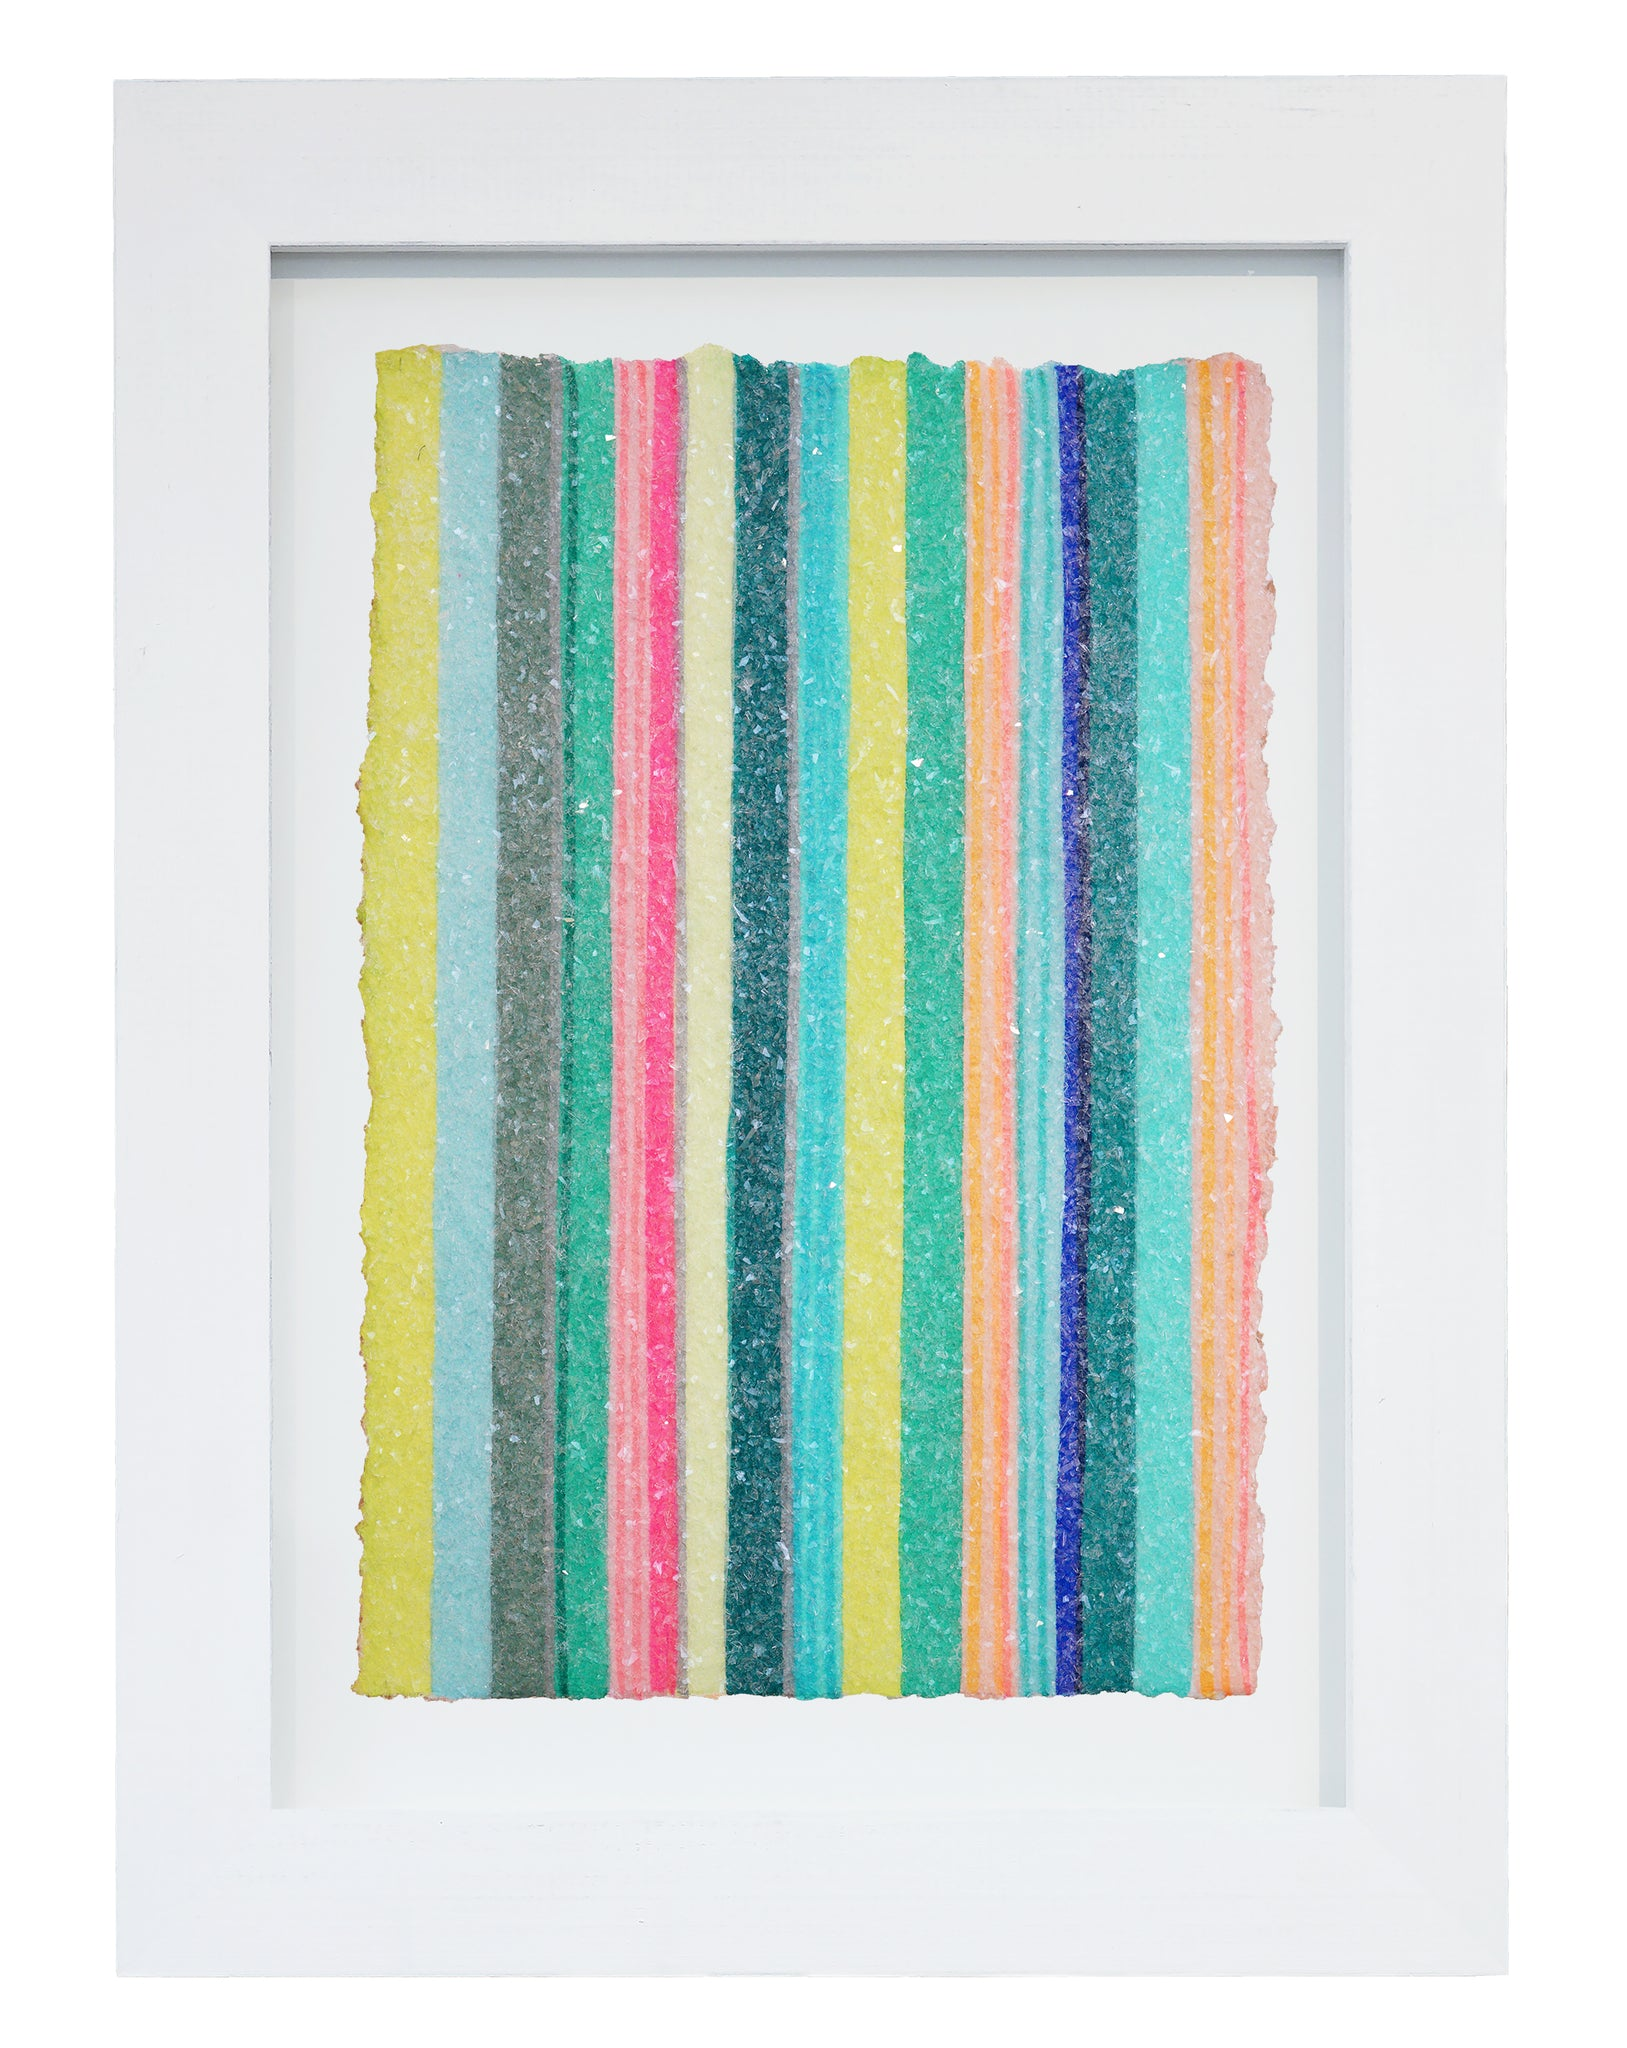 "Lineation No. 10 -17"" X 13"" Framed"